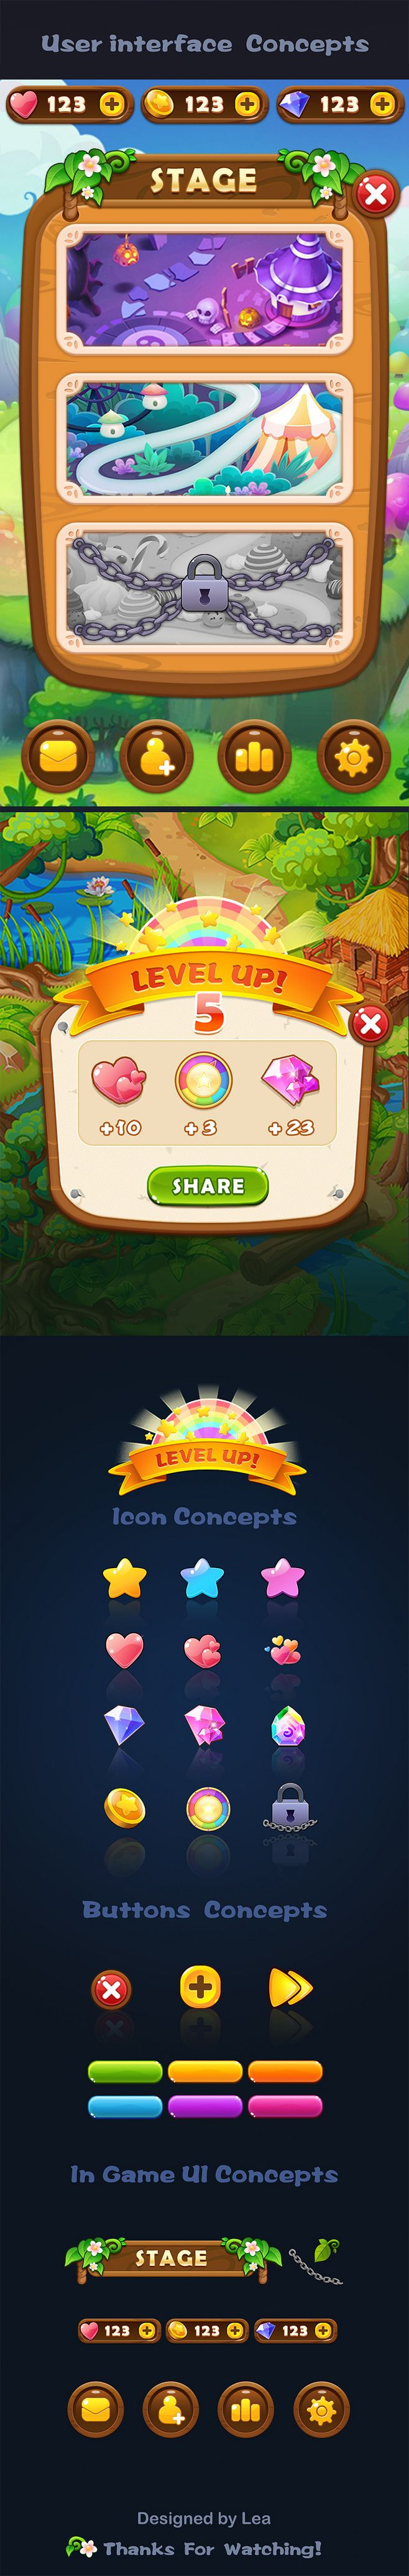 User interface concepts #Game #UI #Design